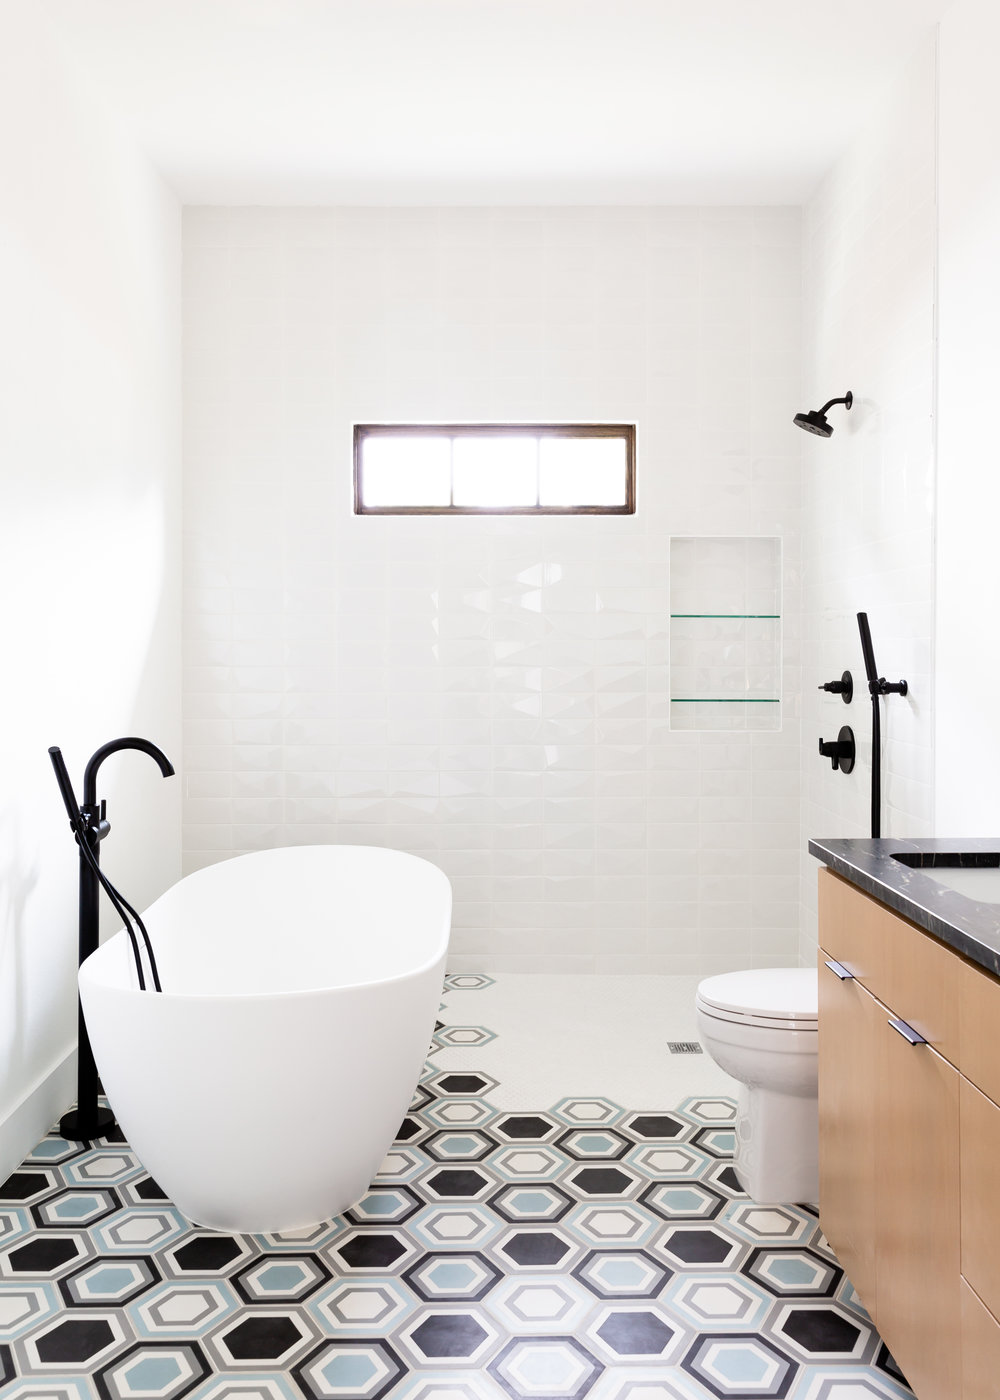 Have some fun with your bathroom. People always want to play it safe, but that's not how we roll!